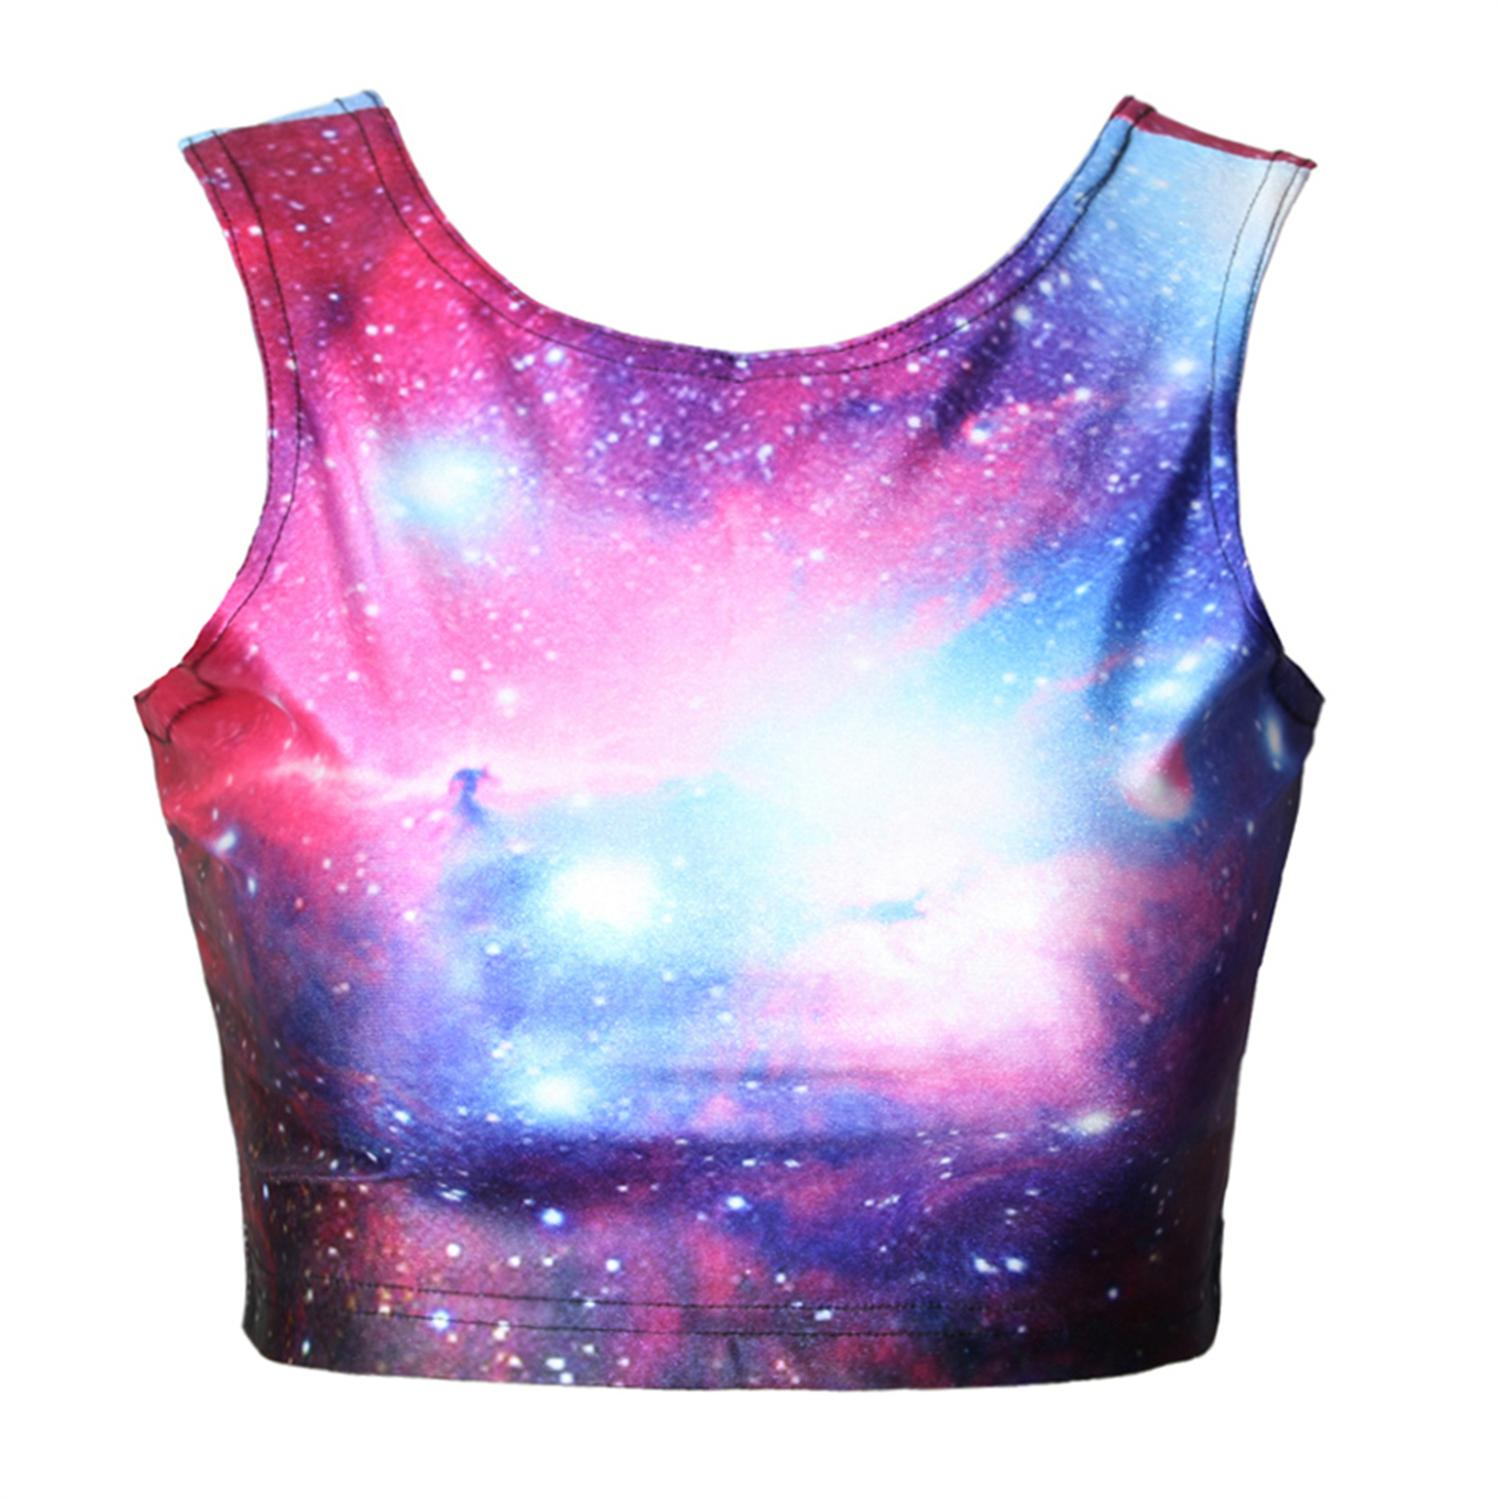 02ca94ccc1 3D Galaxy Printed Crop Top And Mini Skirt Set Party Wear Clothing Women  Summer Sexy Slim Skirt Vest Top Suit